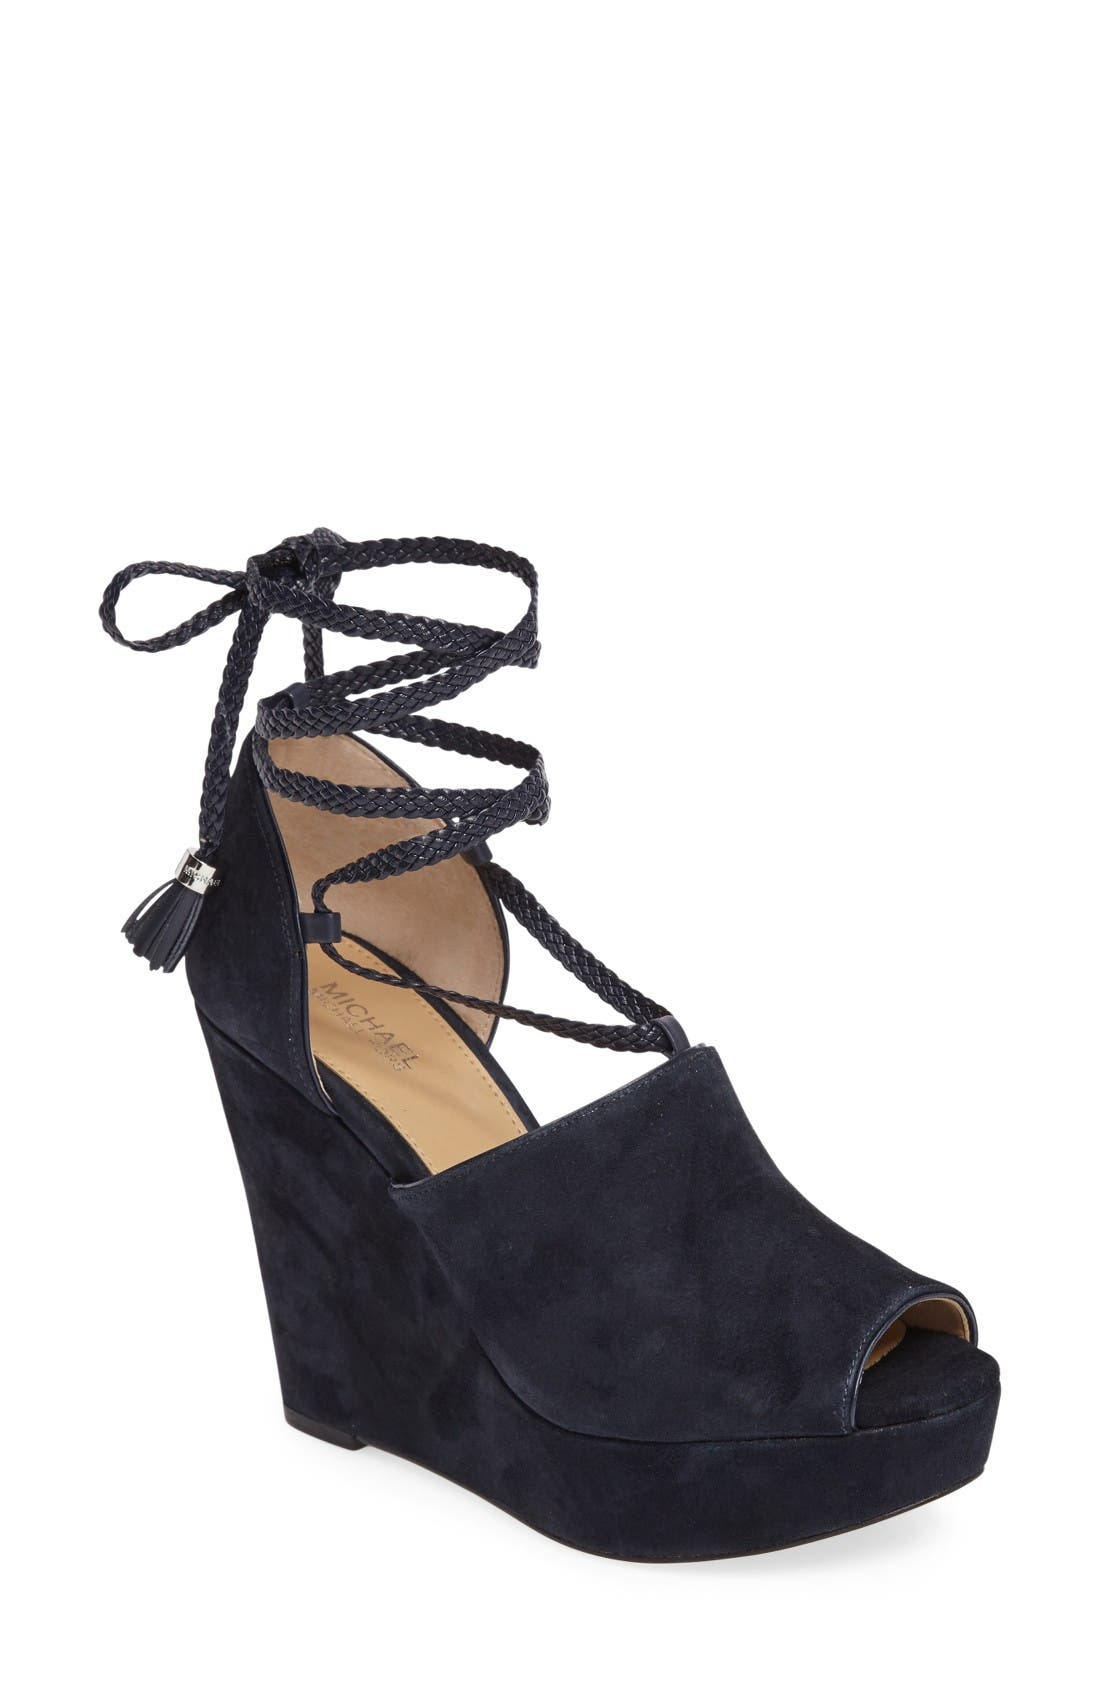 Alternate Image 1 Selected - MICHAEL Michael Kors Hastings Platform Wedge (Women)